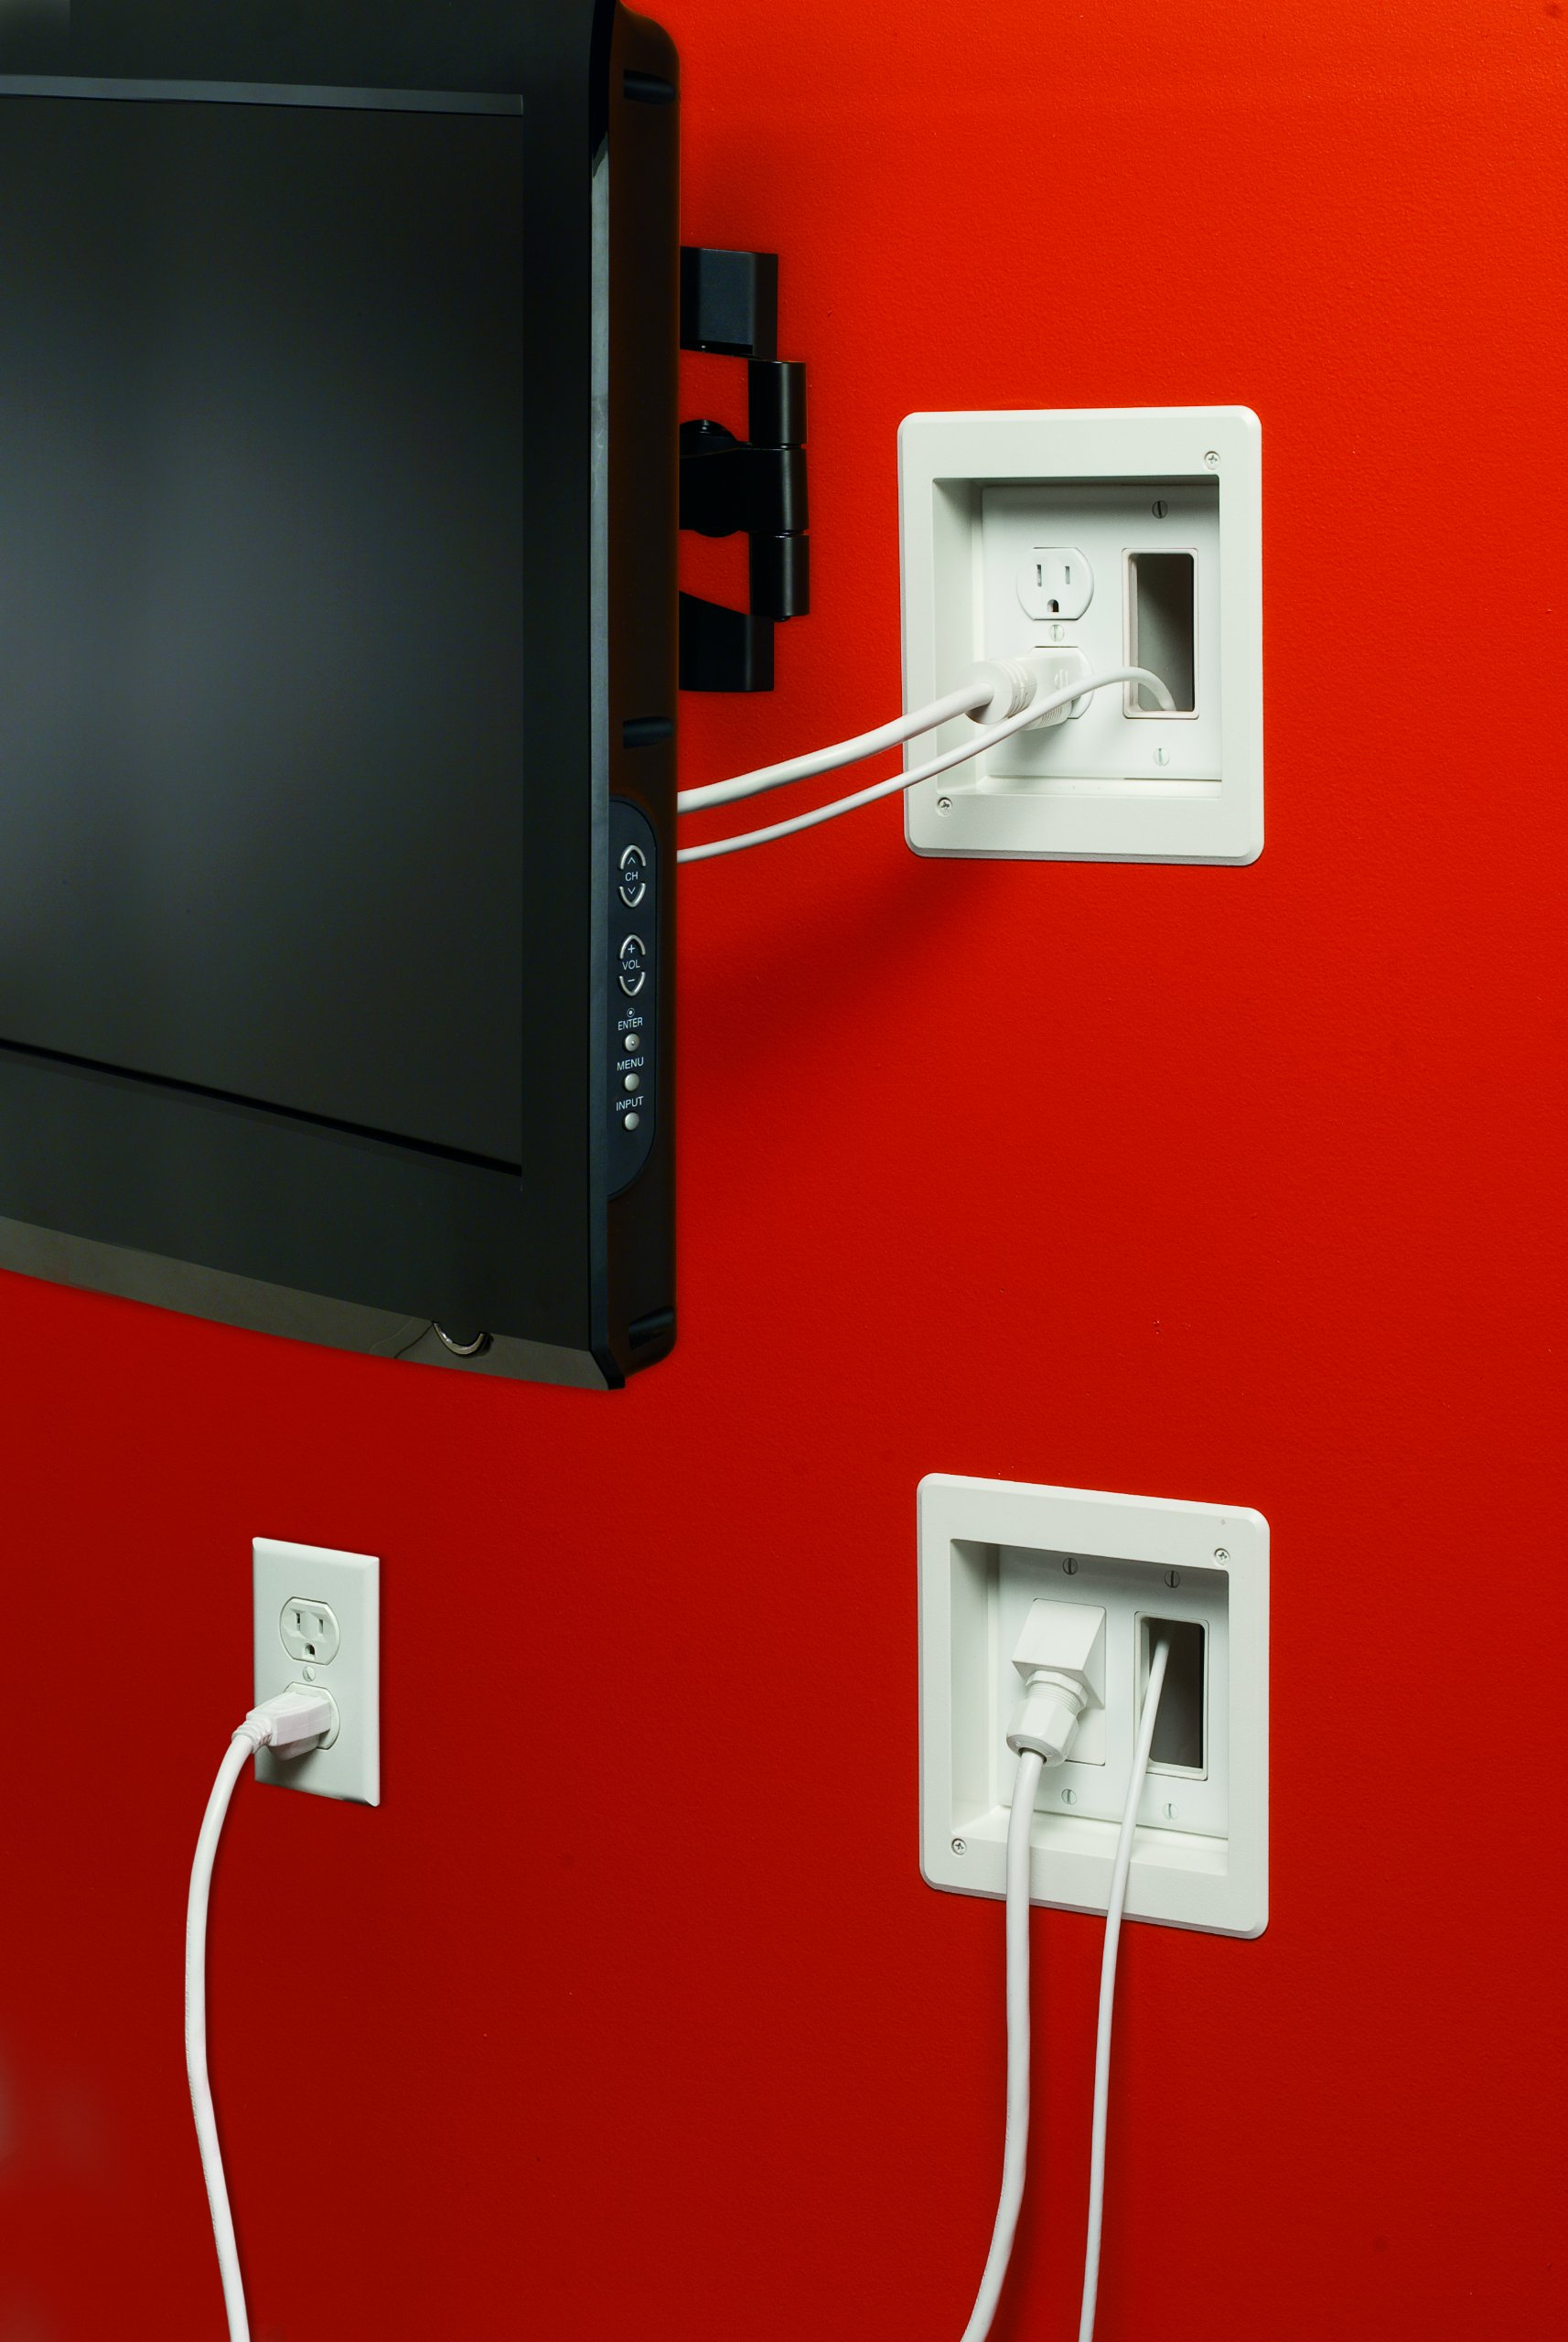 Arlington Tvbr505k 1 Tv Box Recessed Kit With Outlet And Wall Plates Wiring 2 Gang White Pack